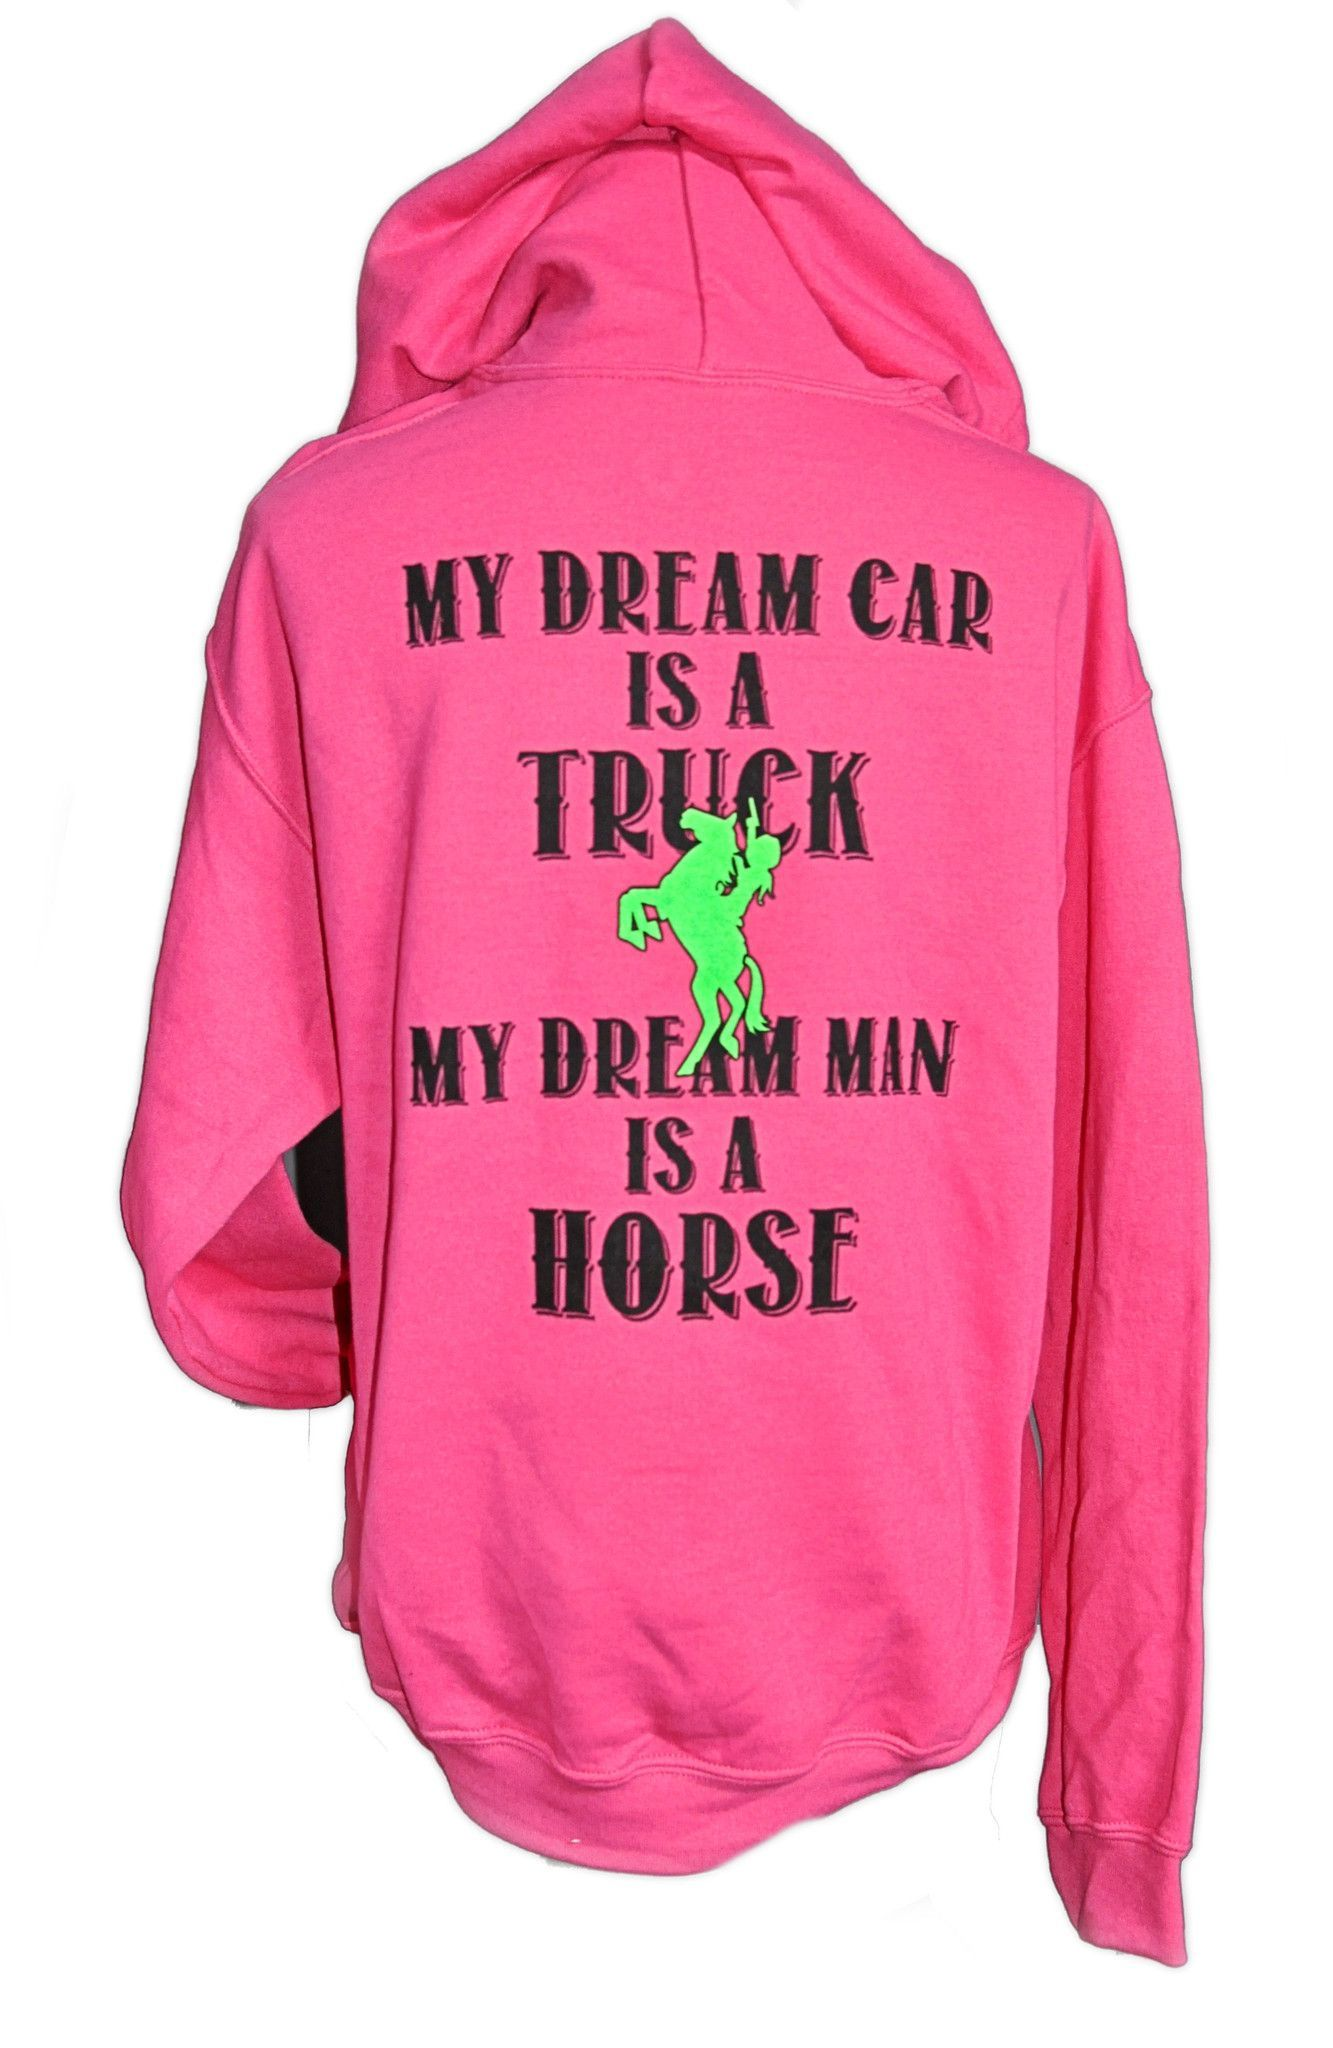 6ed2e6095e704 Dream Man Horse Hoodie is here for you - if you're like me and your dream  man is your best horse. :) Featuring